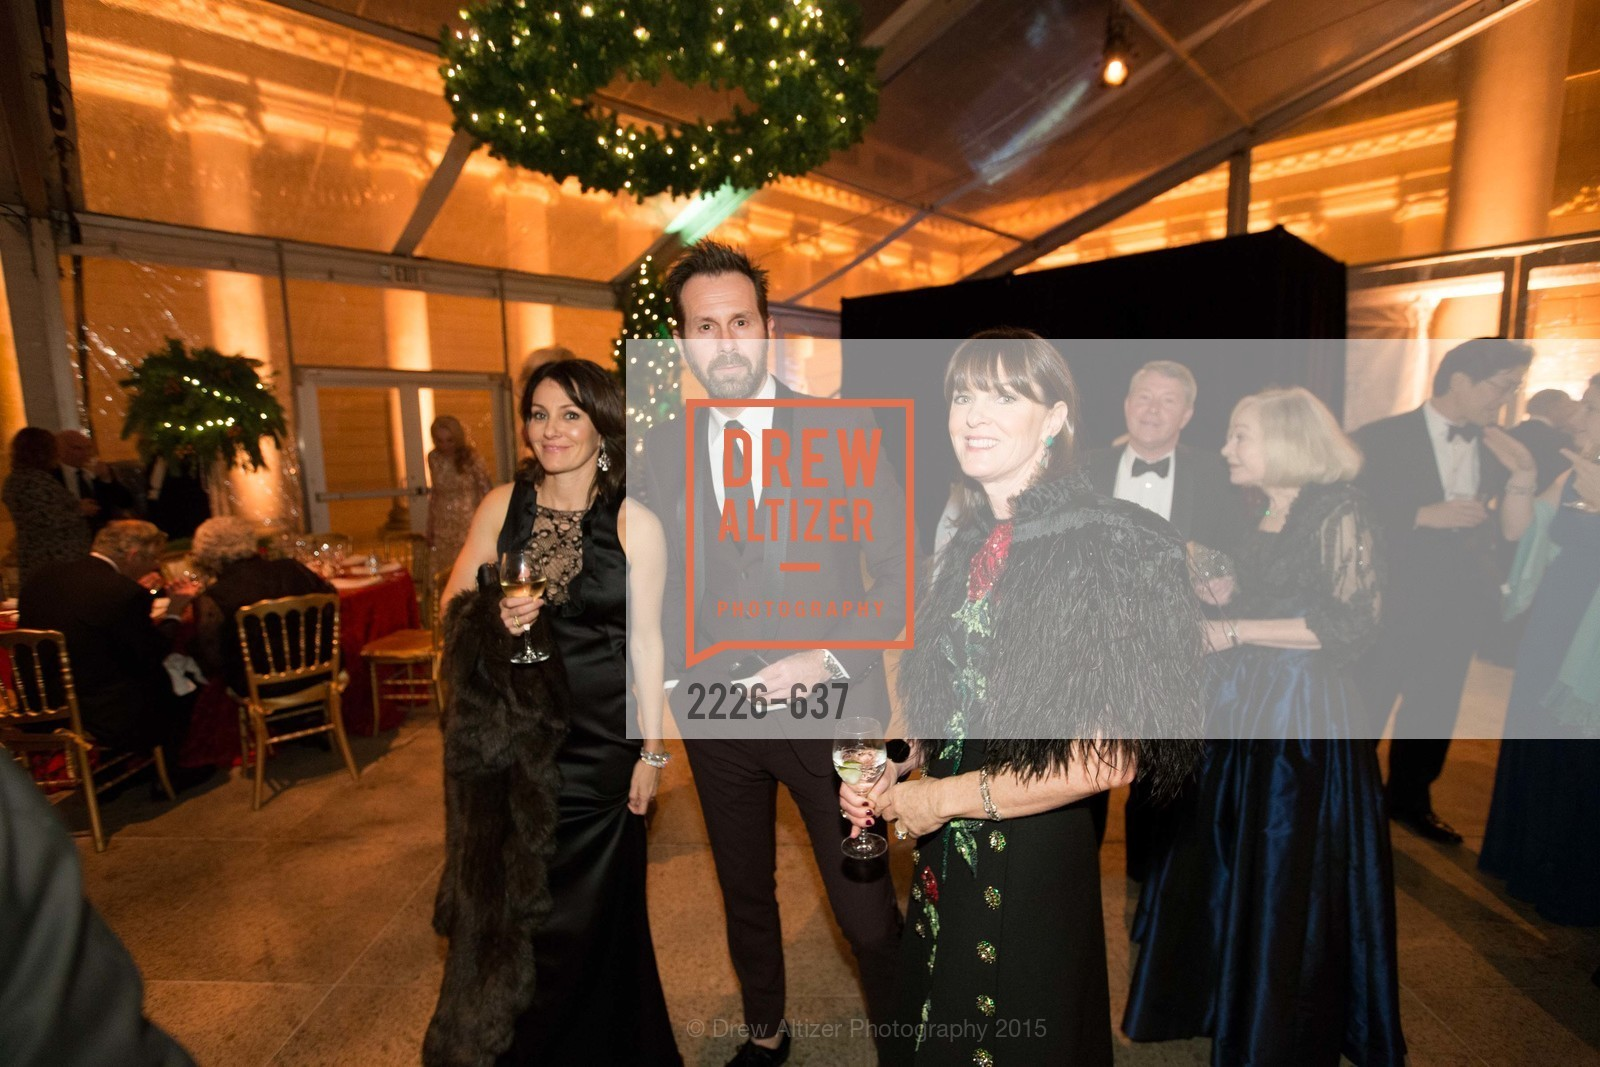 Beth Grossman, Paolo Cigognini, Allison Speer, AN ELEGANT EVENING Presented by the Fine Arts Museums of San Francisco, Legion of Honor, Court of Honor. 100 34th Ave, December 8th, 2015,Drew Altizer, Drew Altizer Photography, full-service agency, private events, San Francisco photographer, photographer california